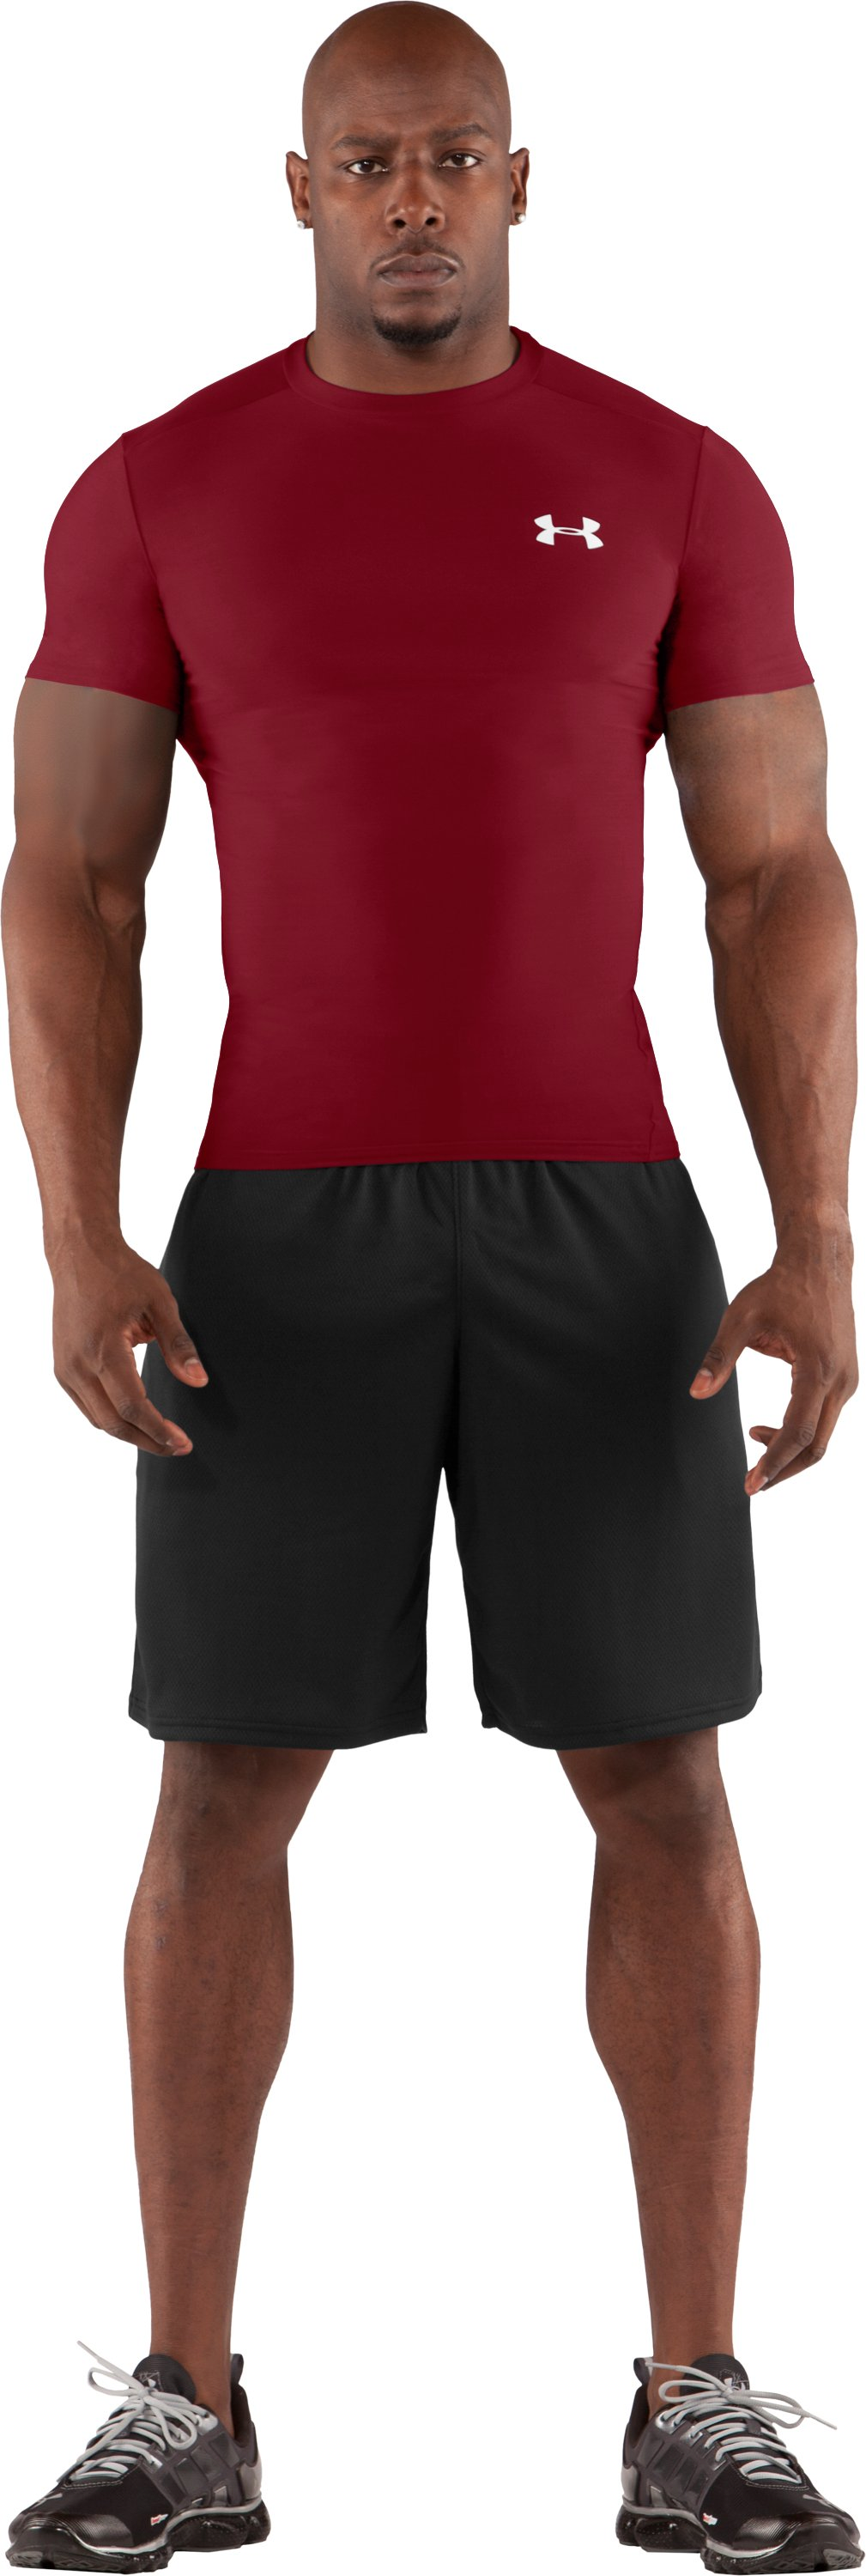 Men's HeatGear® Compression Short Sleeve T-Shirt, Crimson